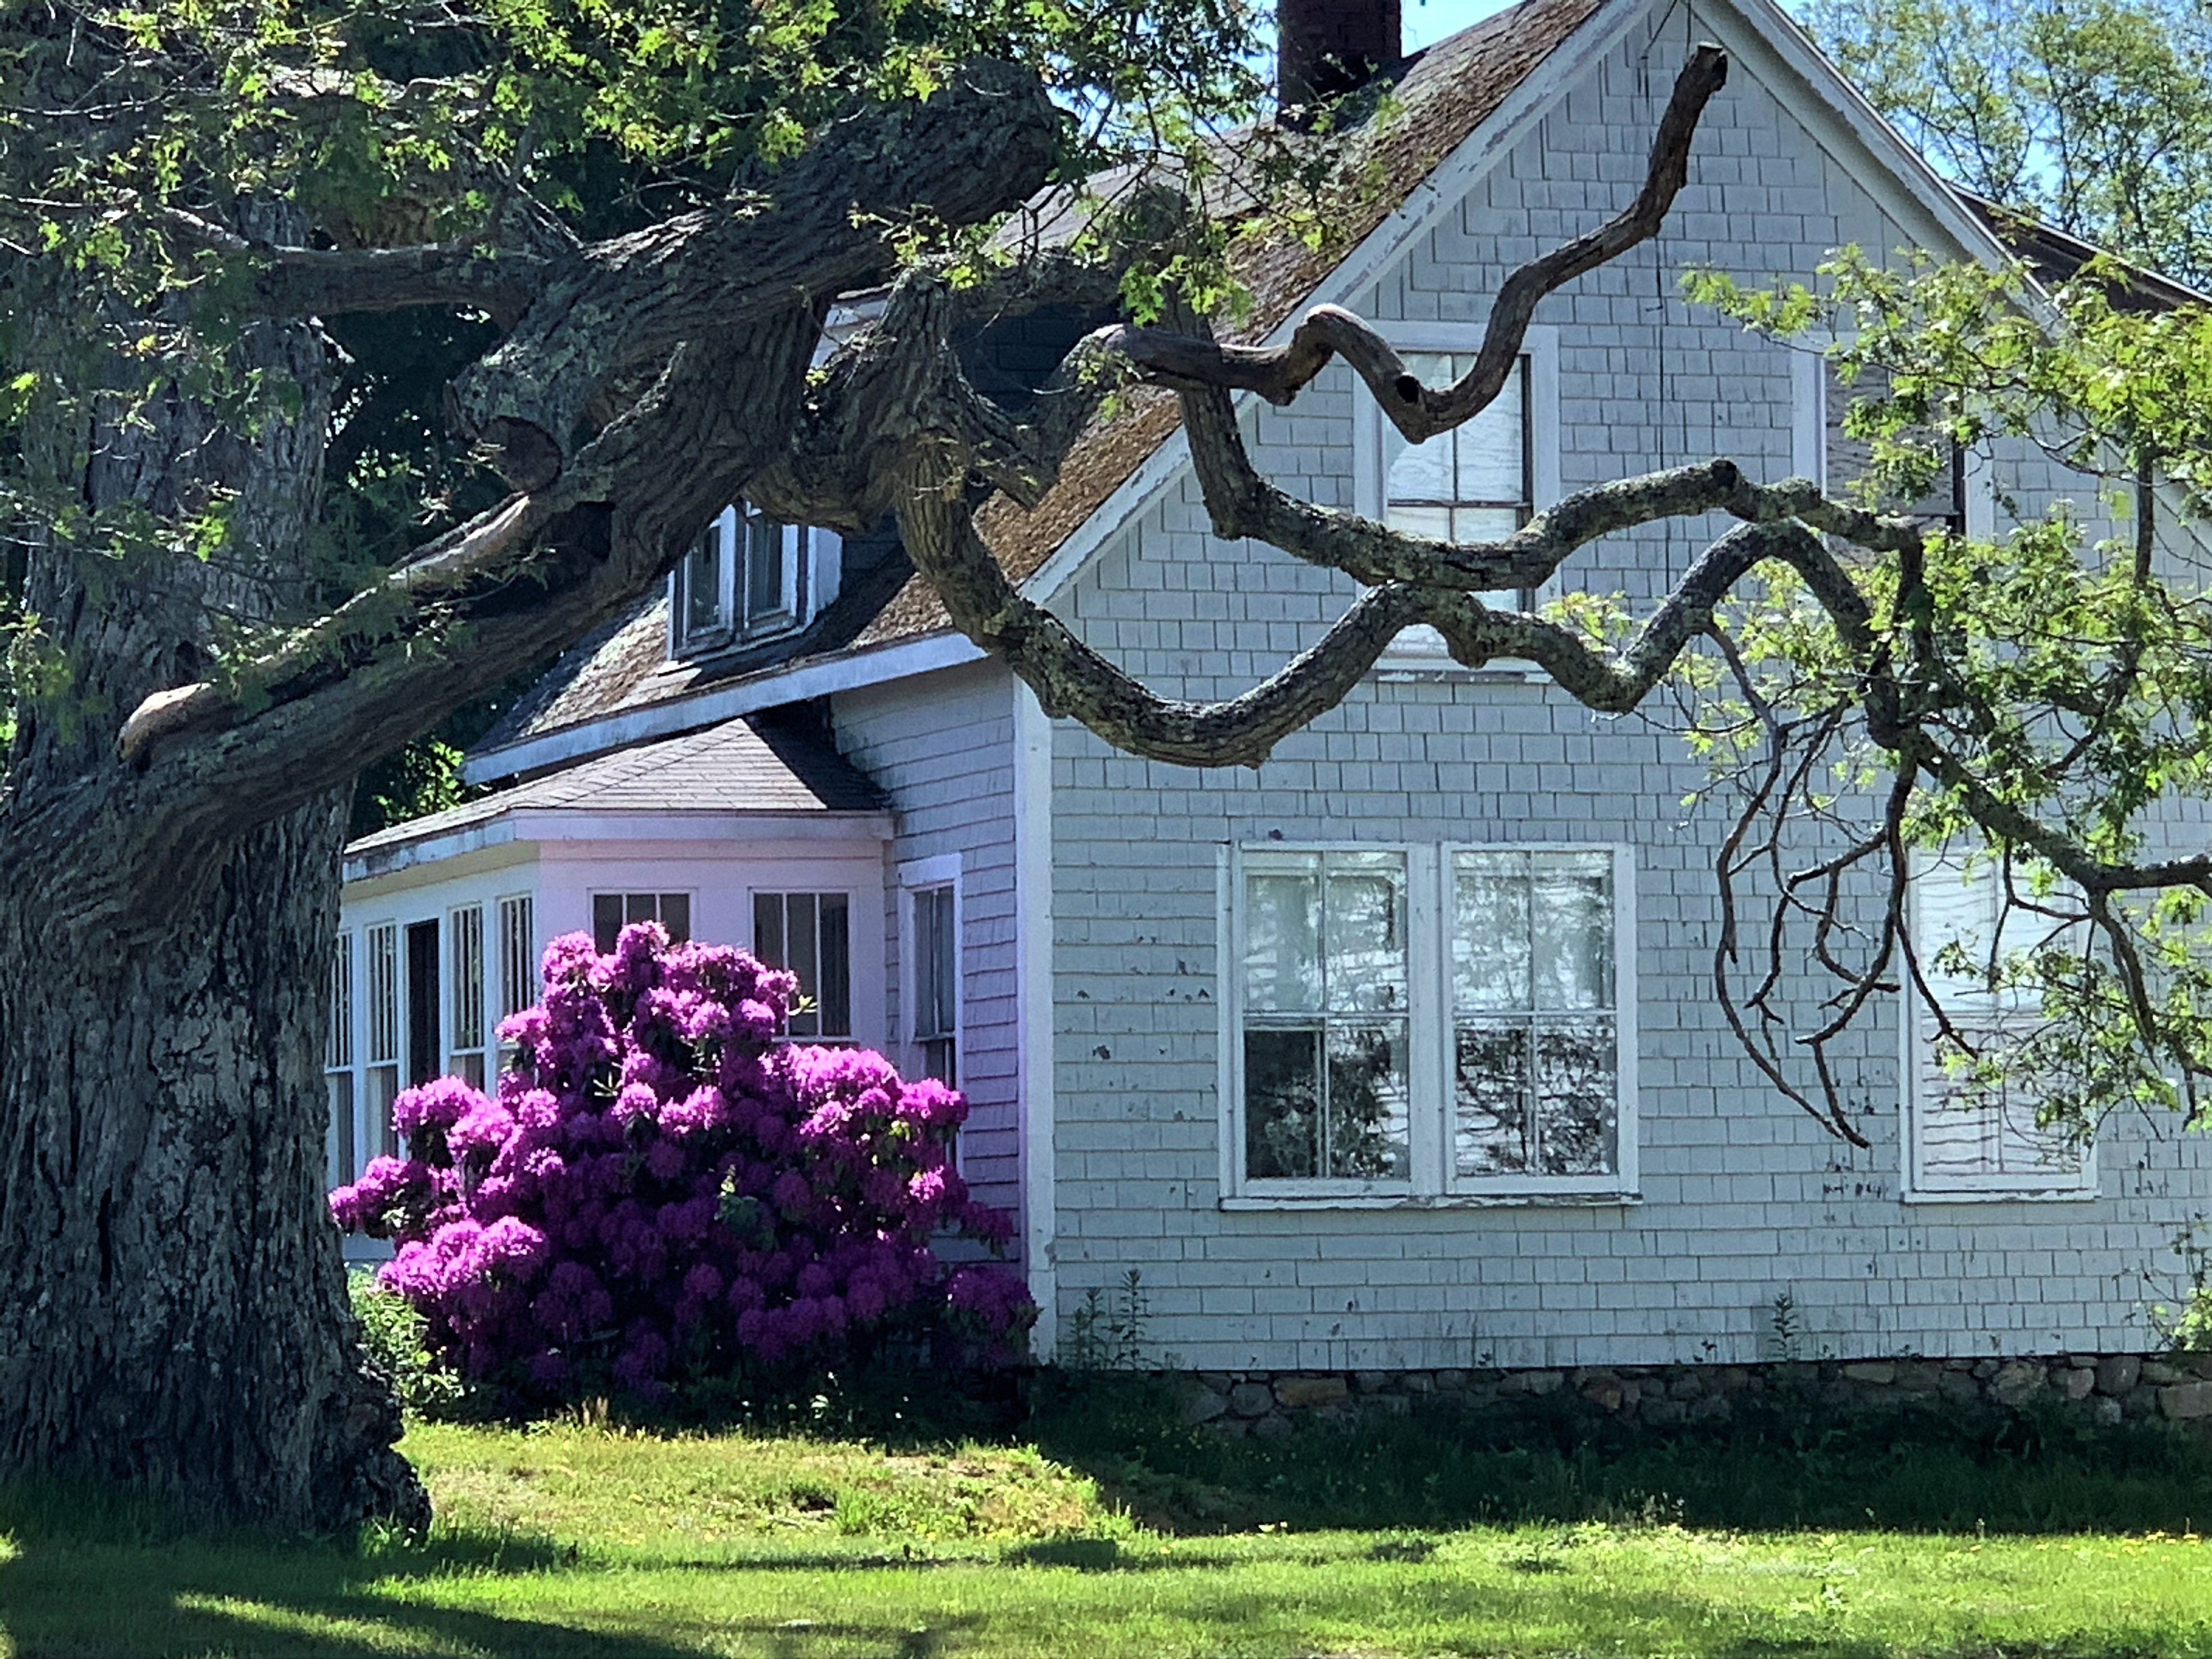 House in New Harbor, Maine